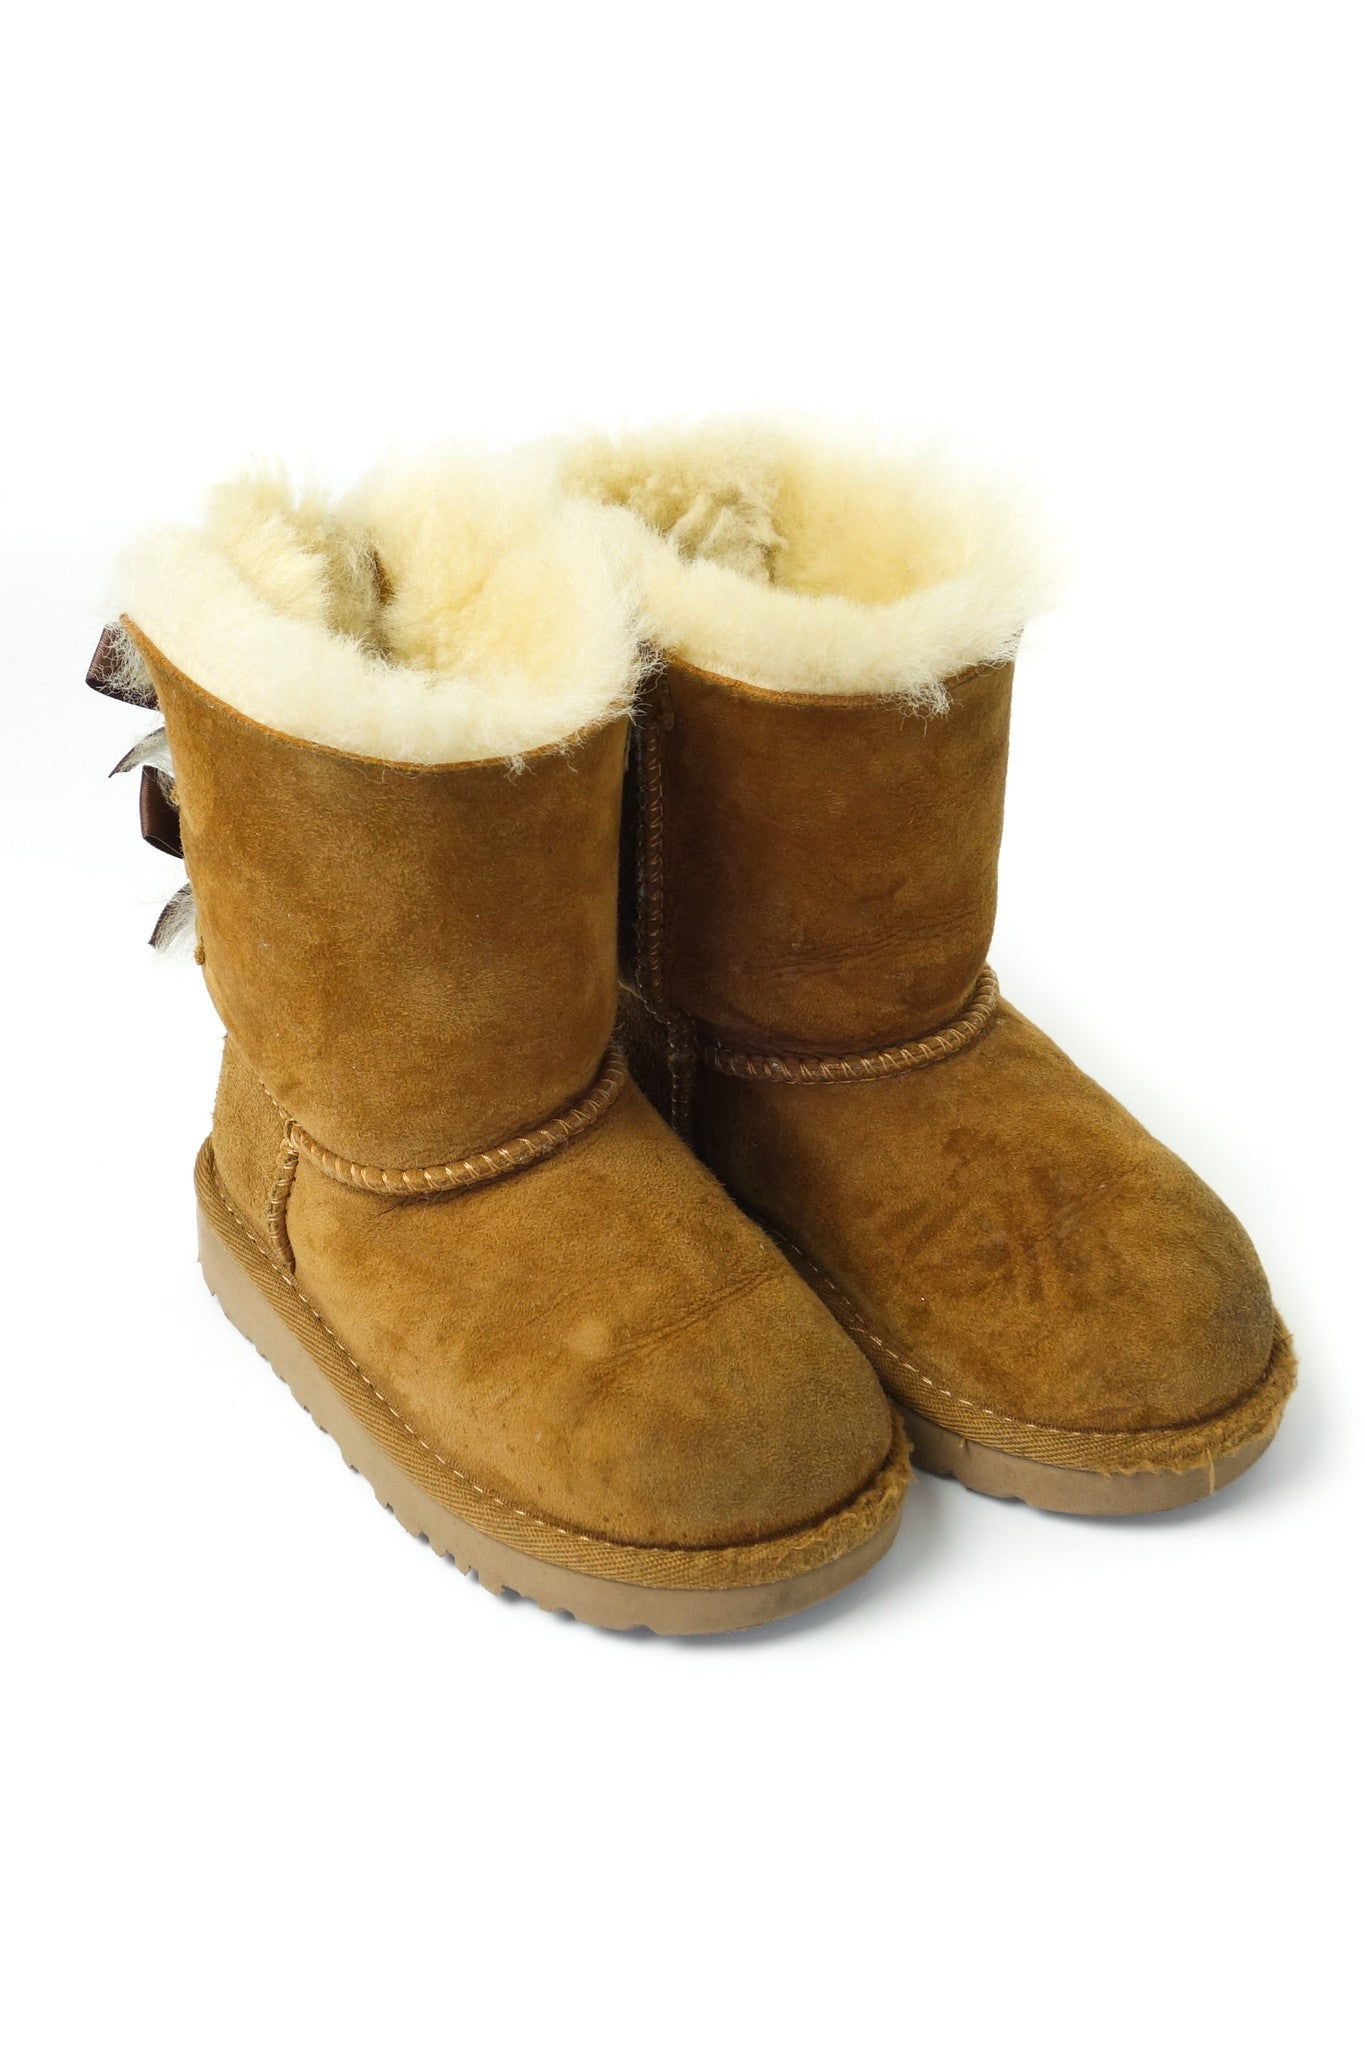 10001580 UGG Kids~Boots 3T (US 8) at Retykle